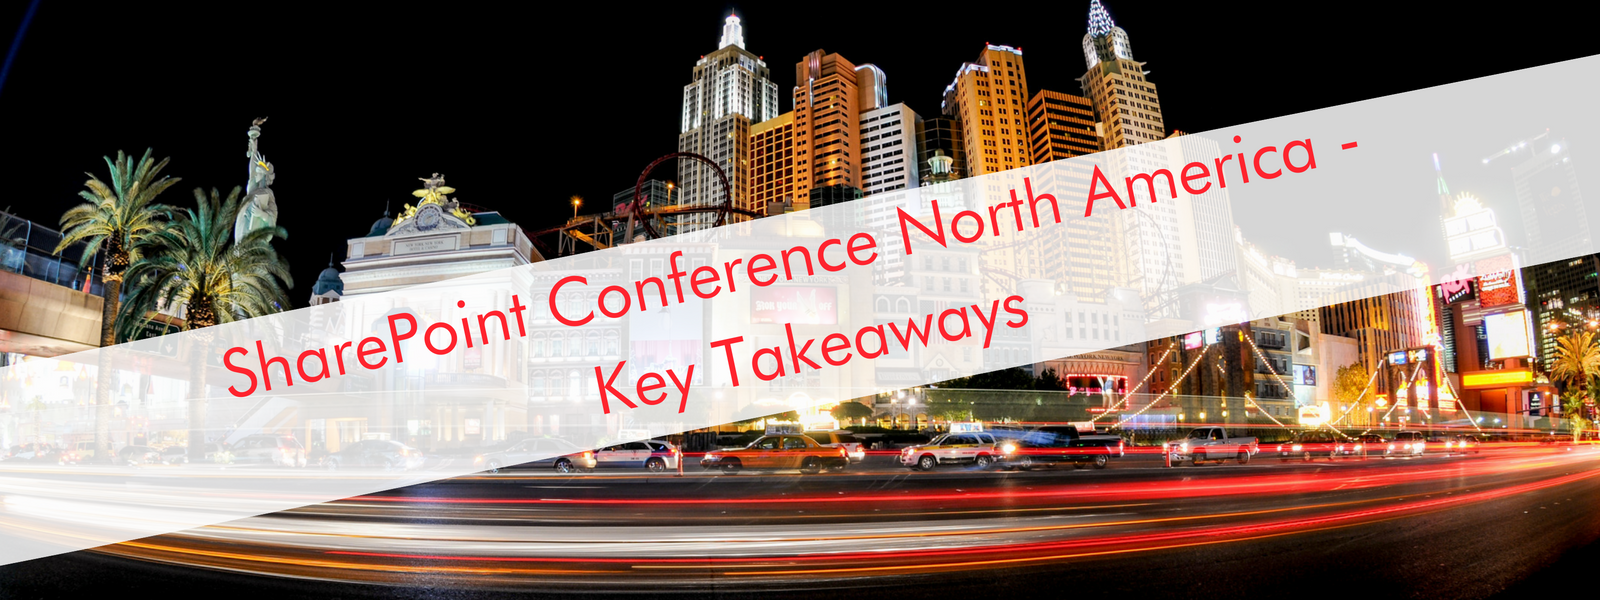 SharePoint Conference North America, back with a bang!